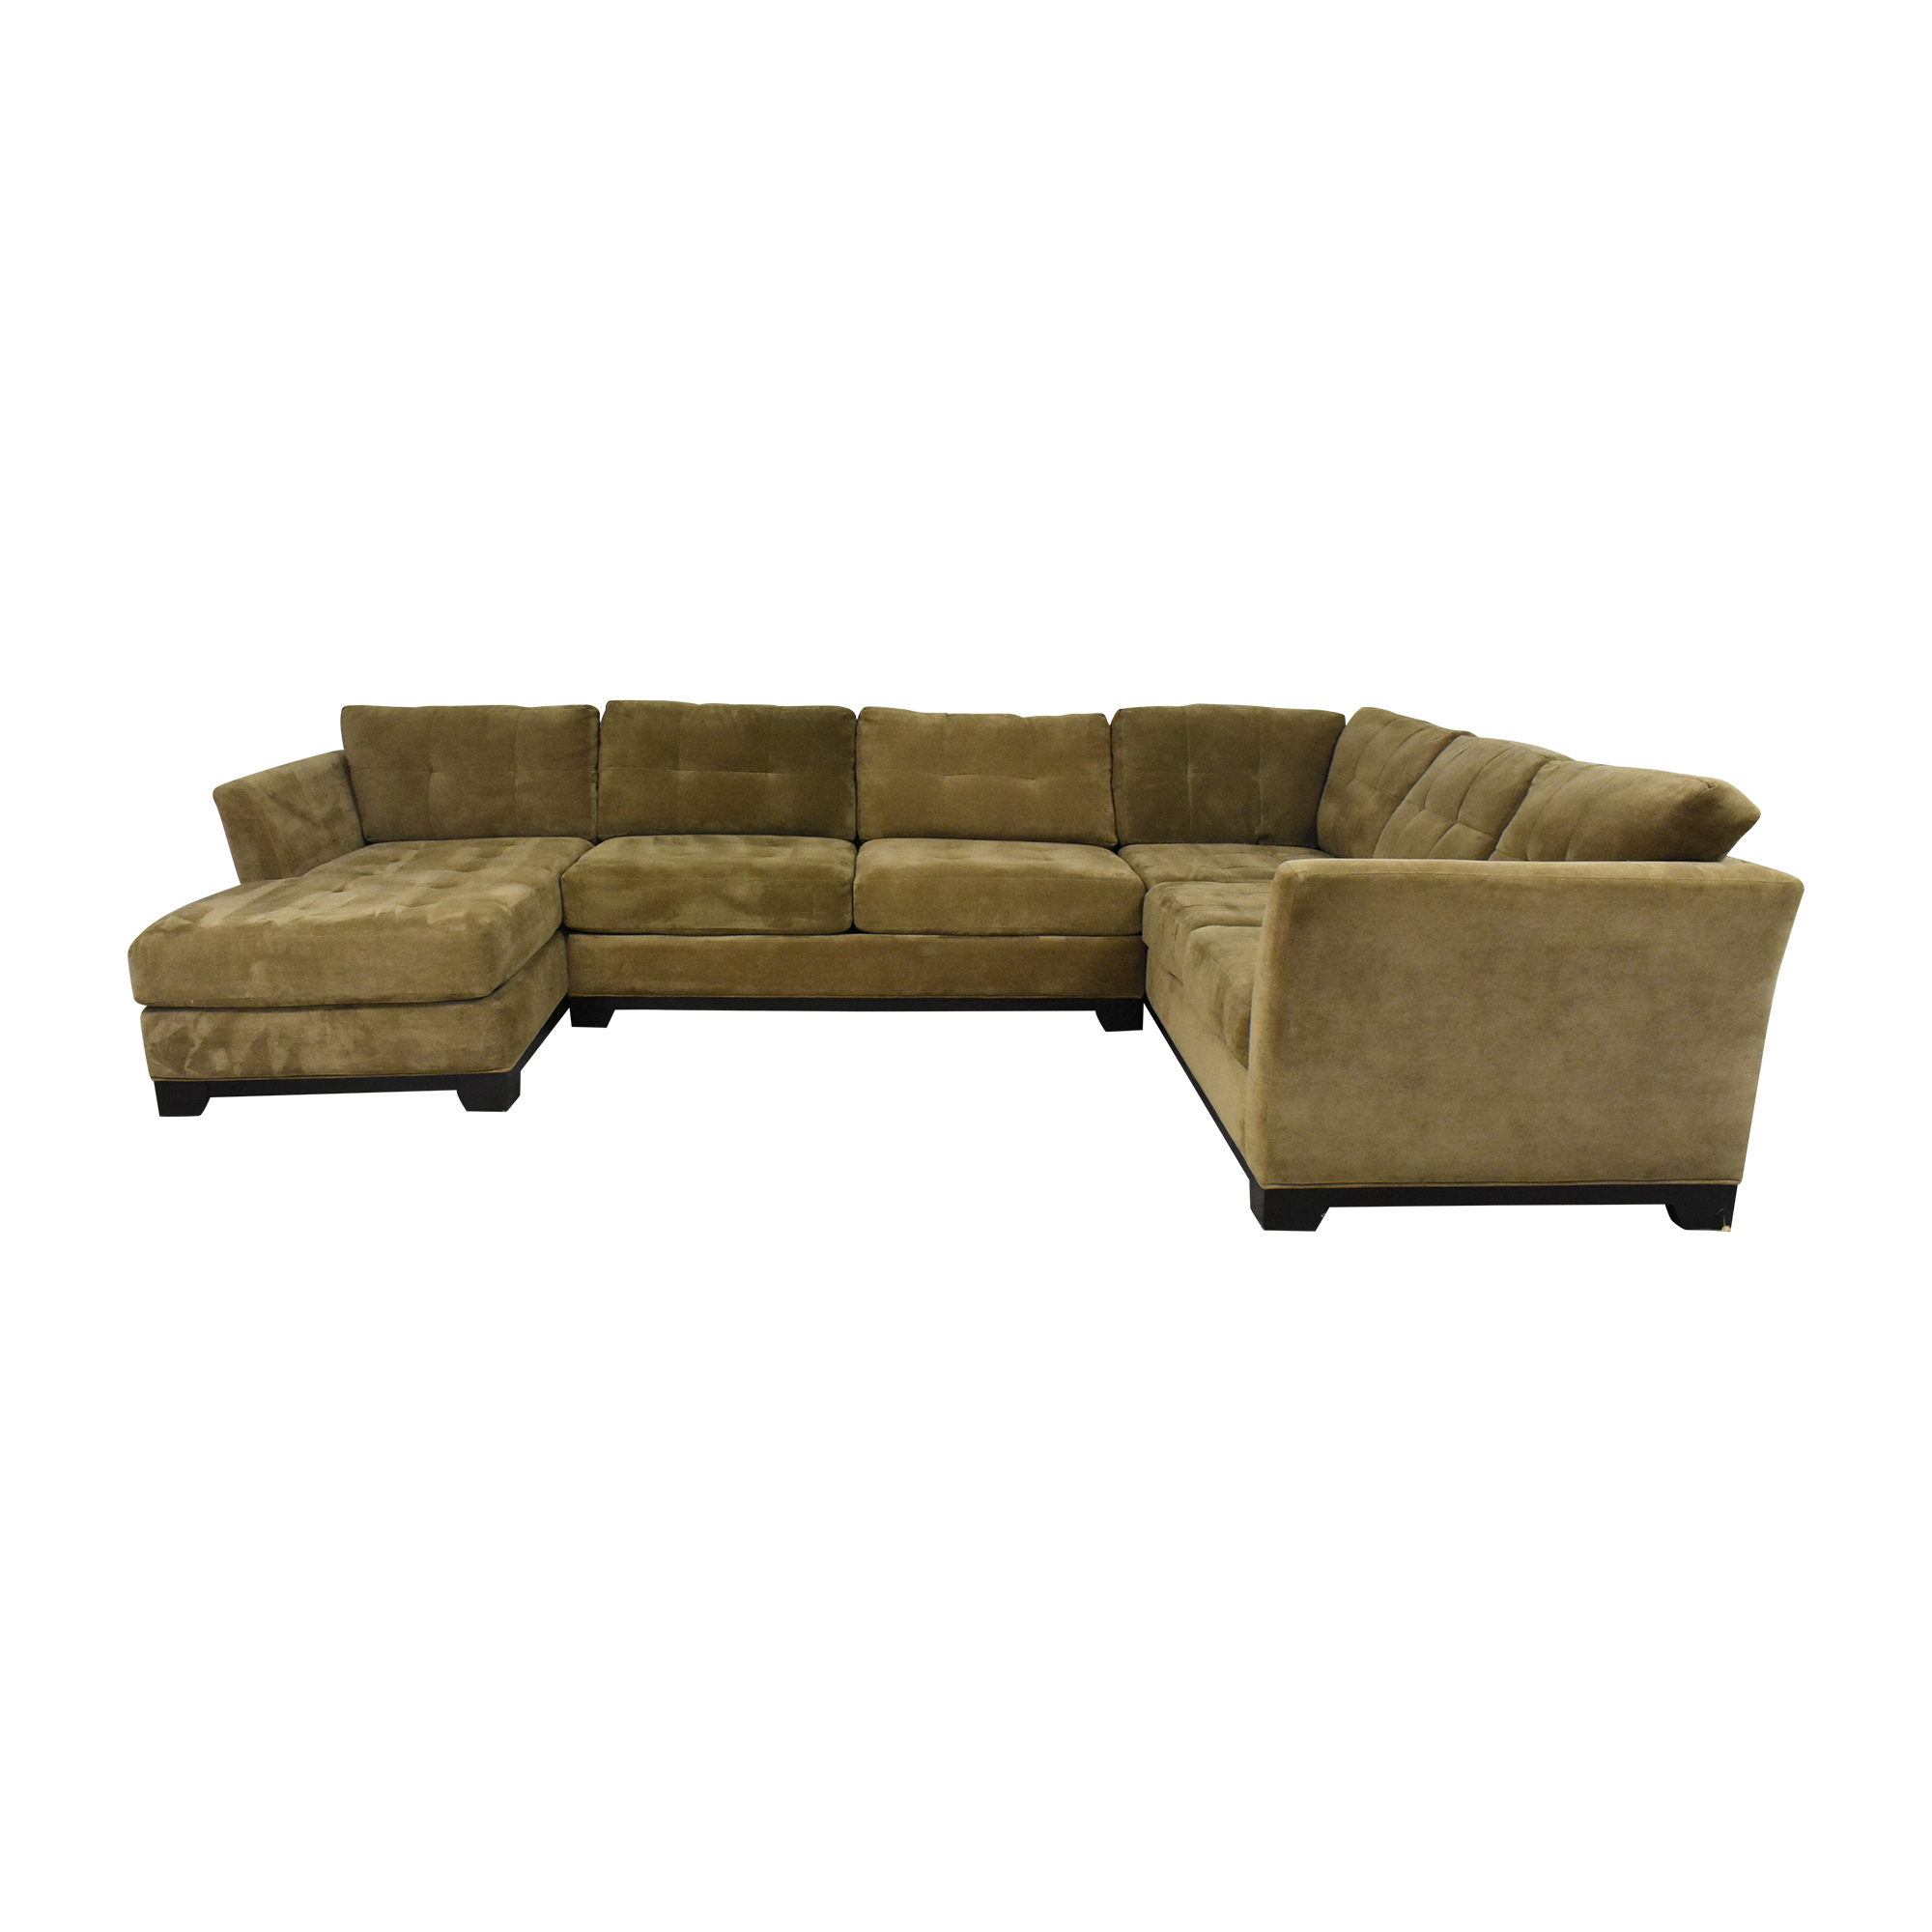 shop Macy's Elliot Three Piece Sectional Sofa Macy's